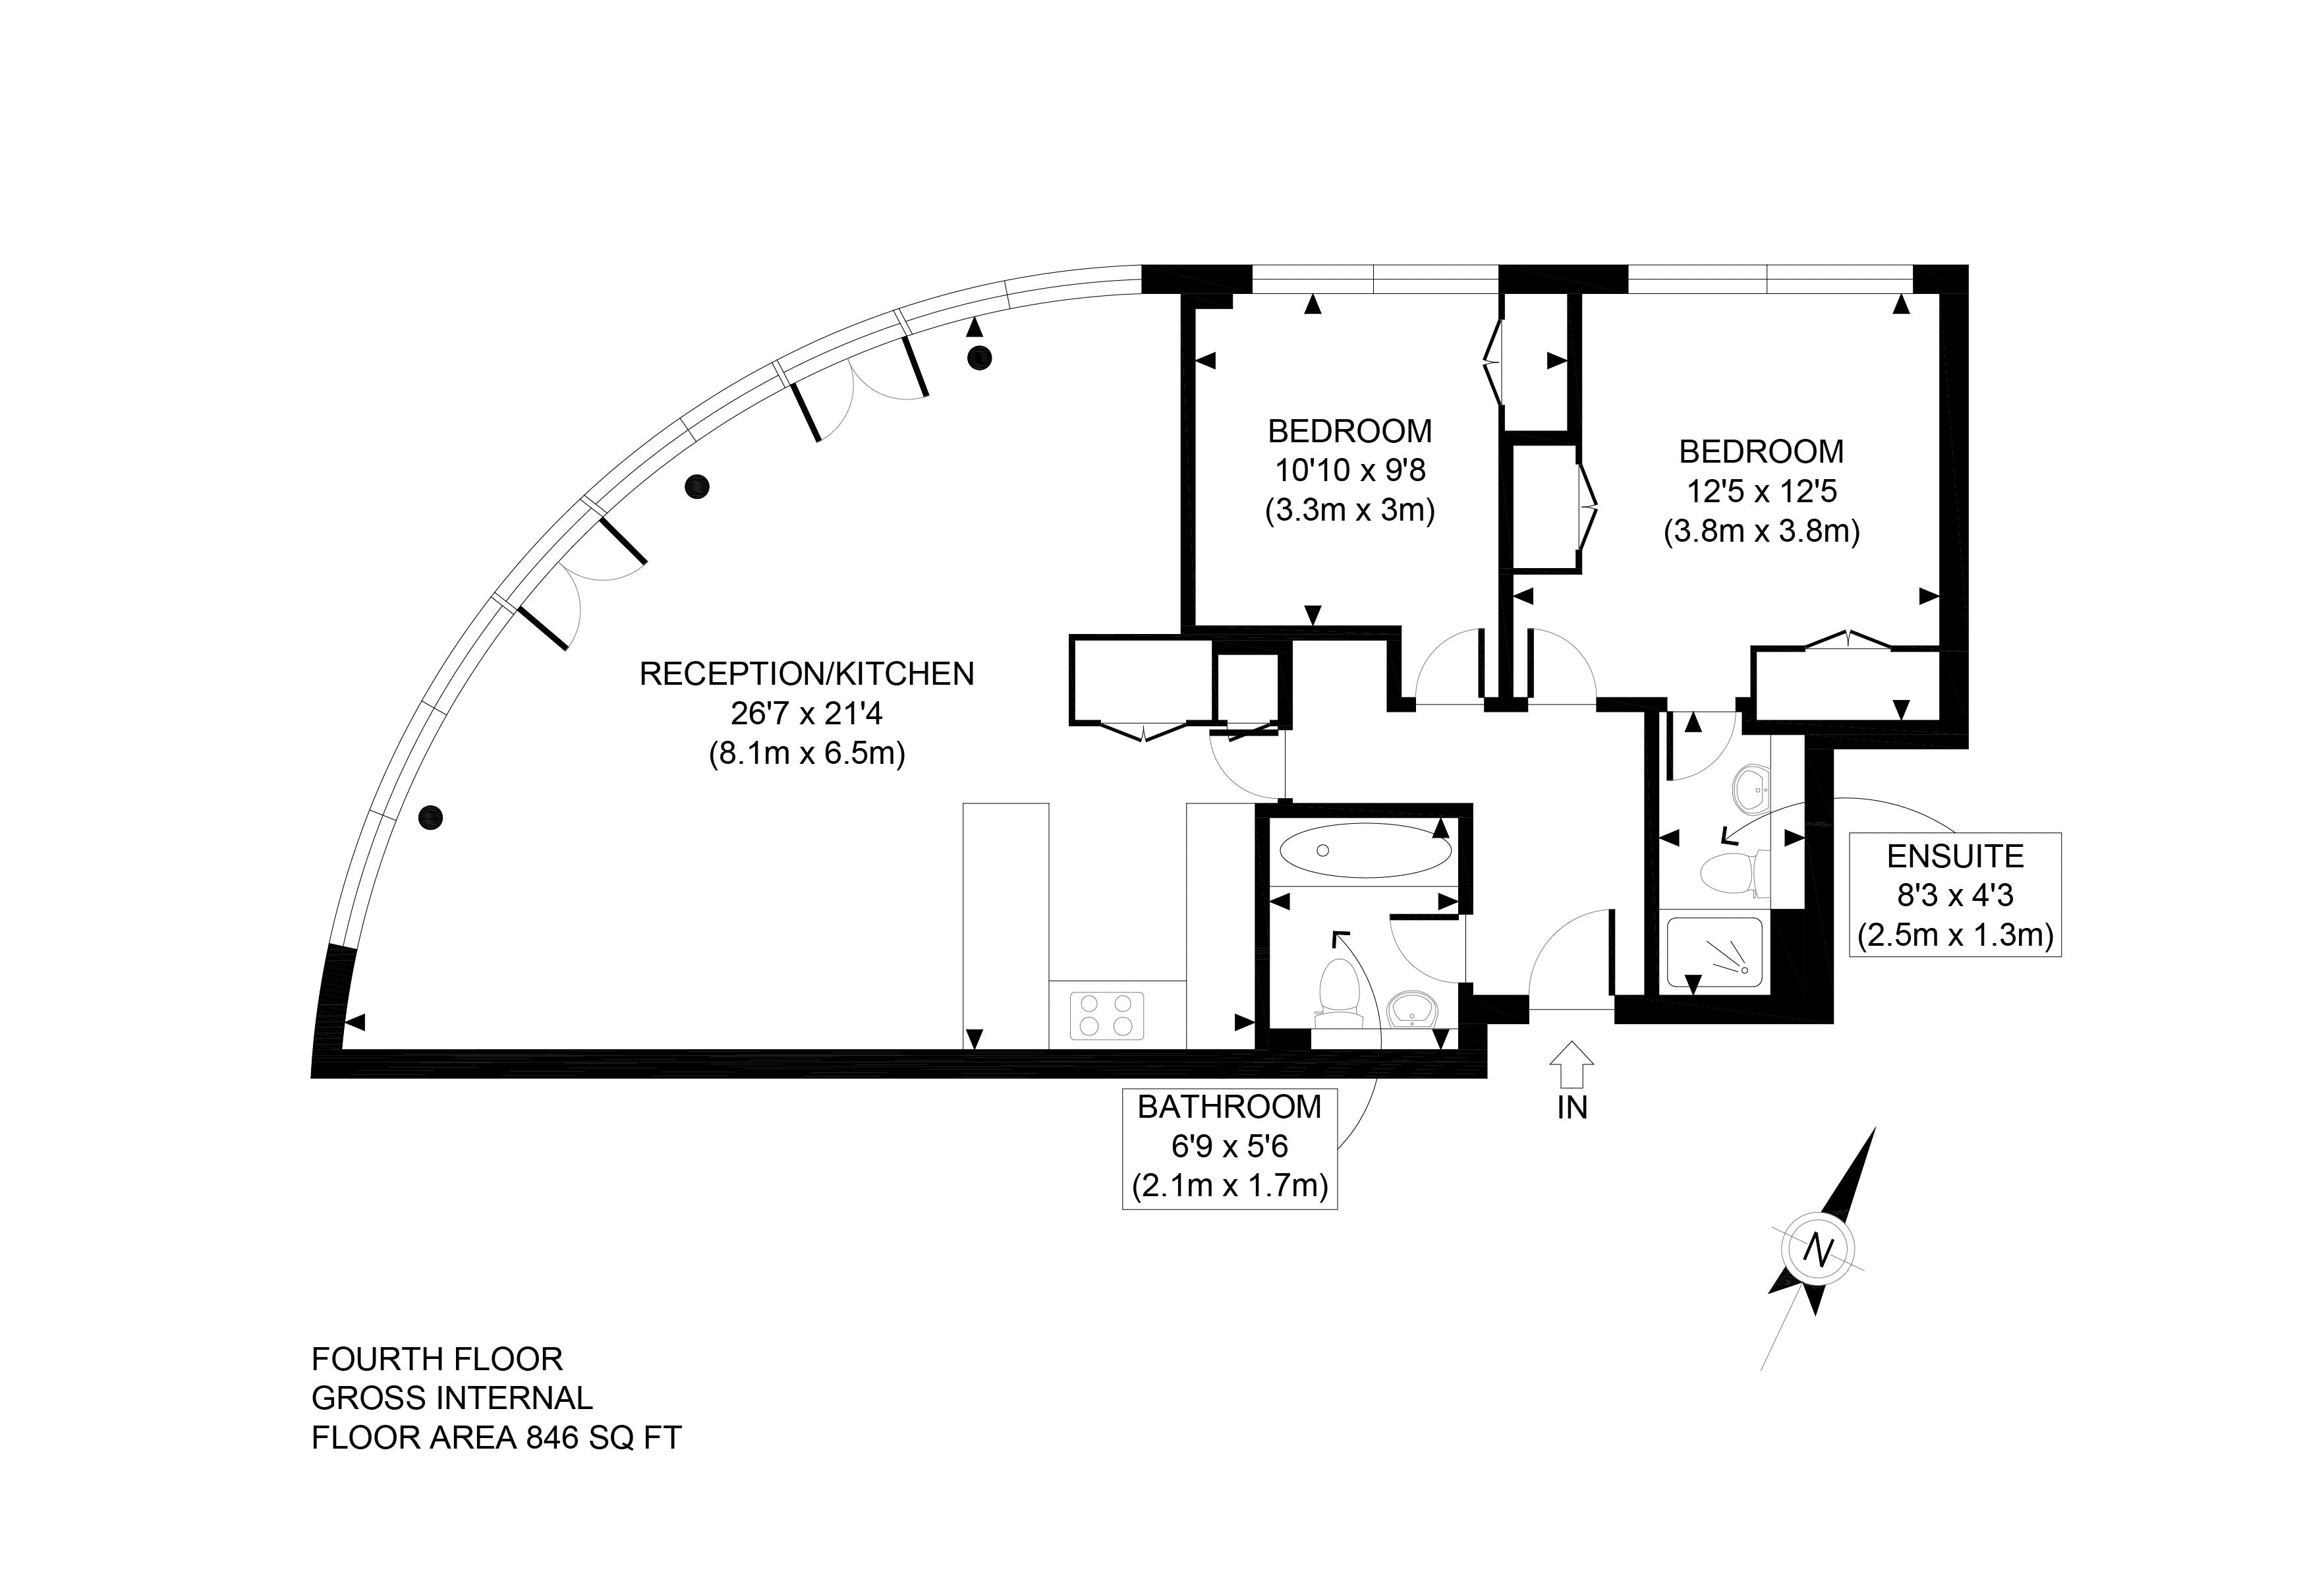 ... Professionally Produced 2D Floor Plan ...